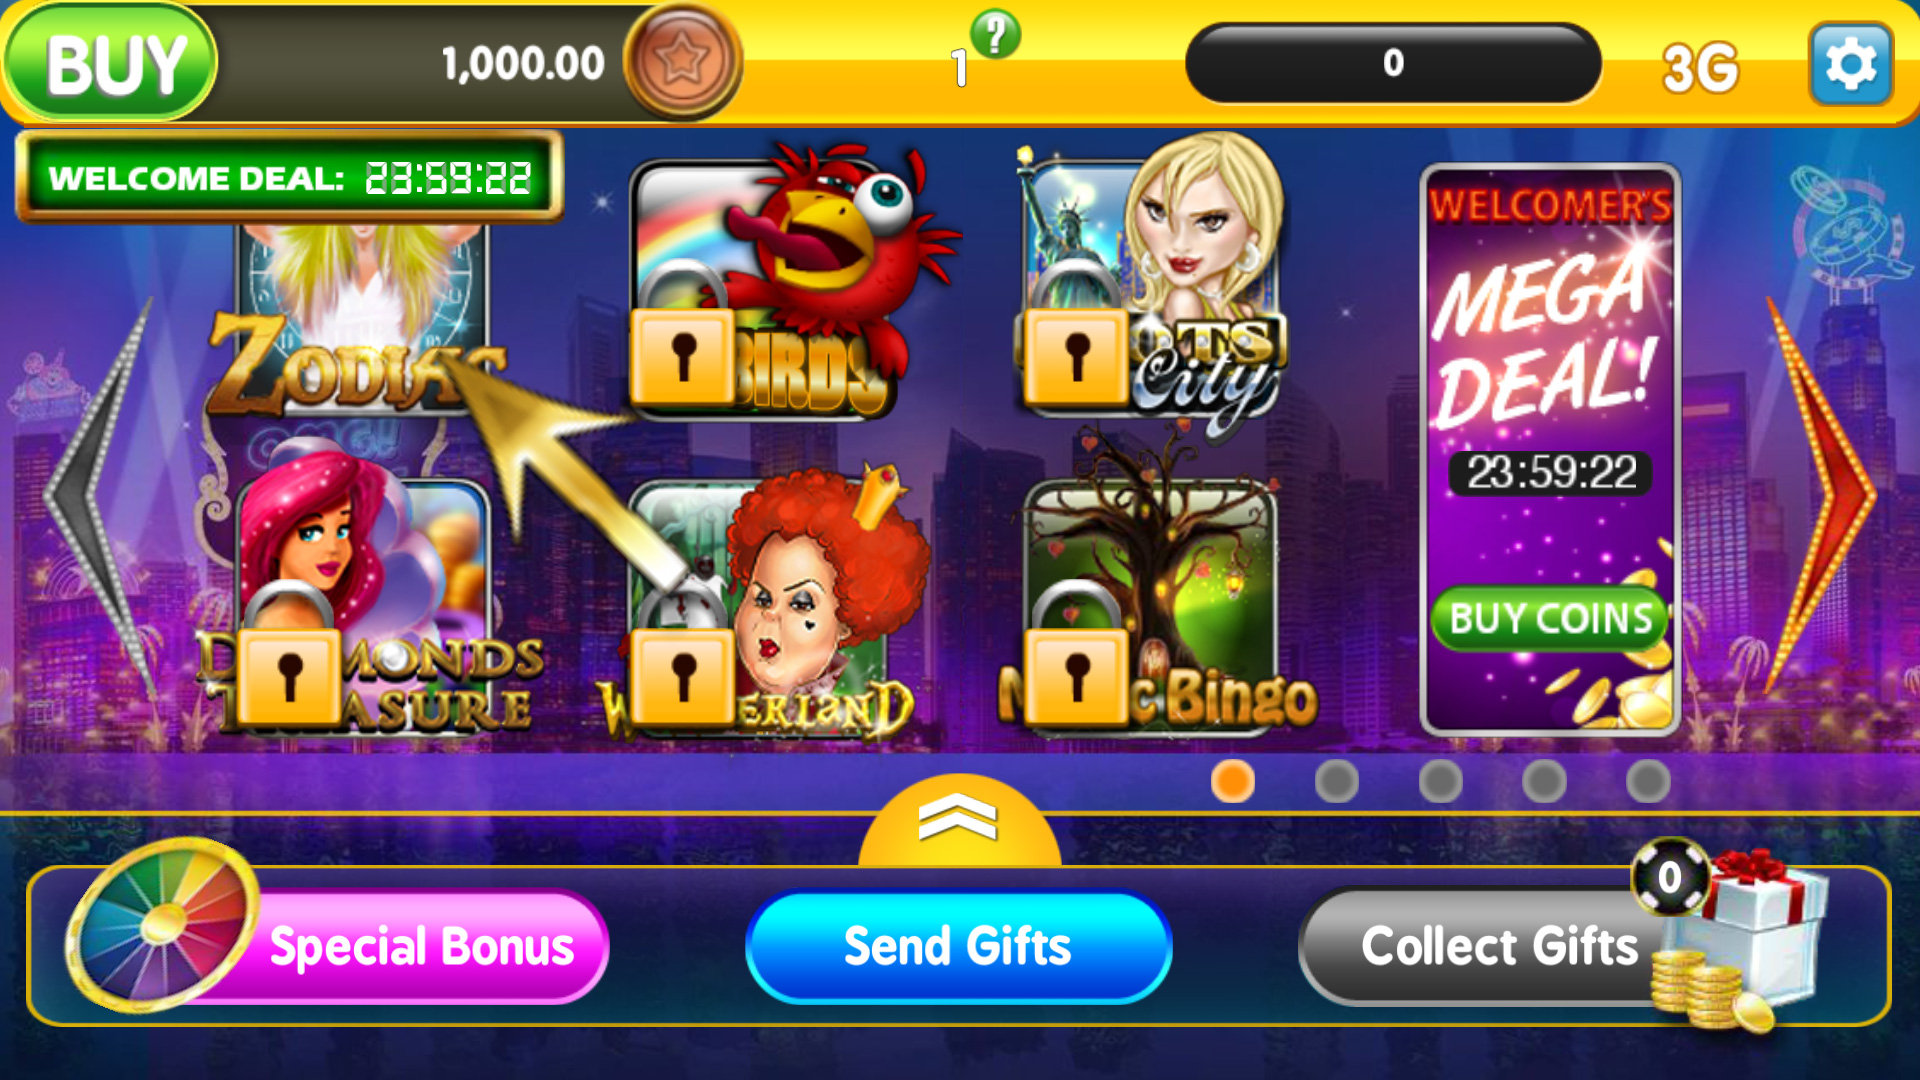 Casino slot big wins